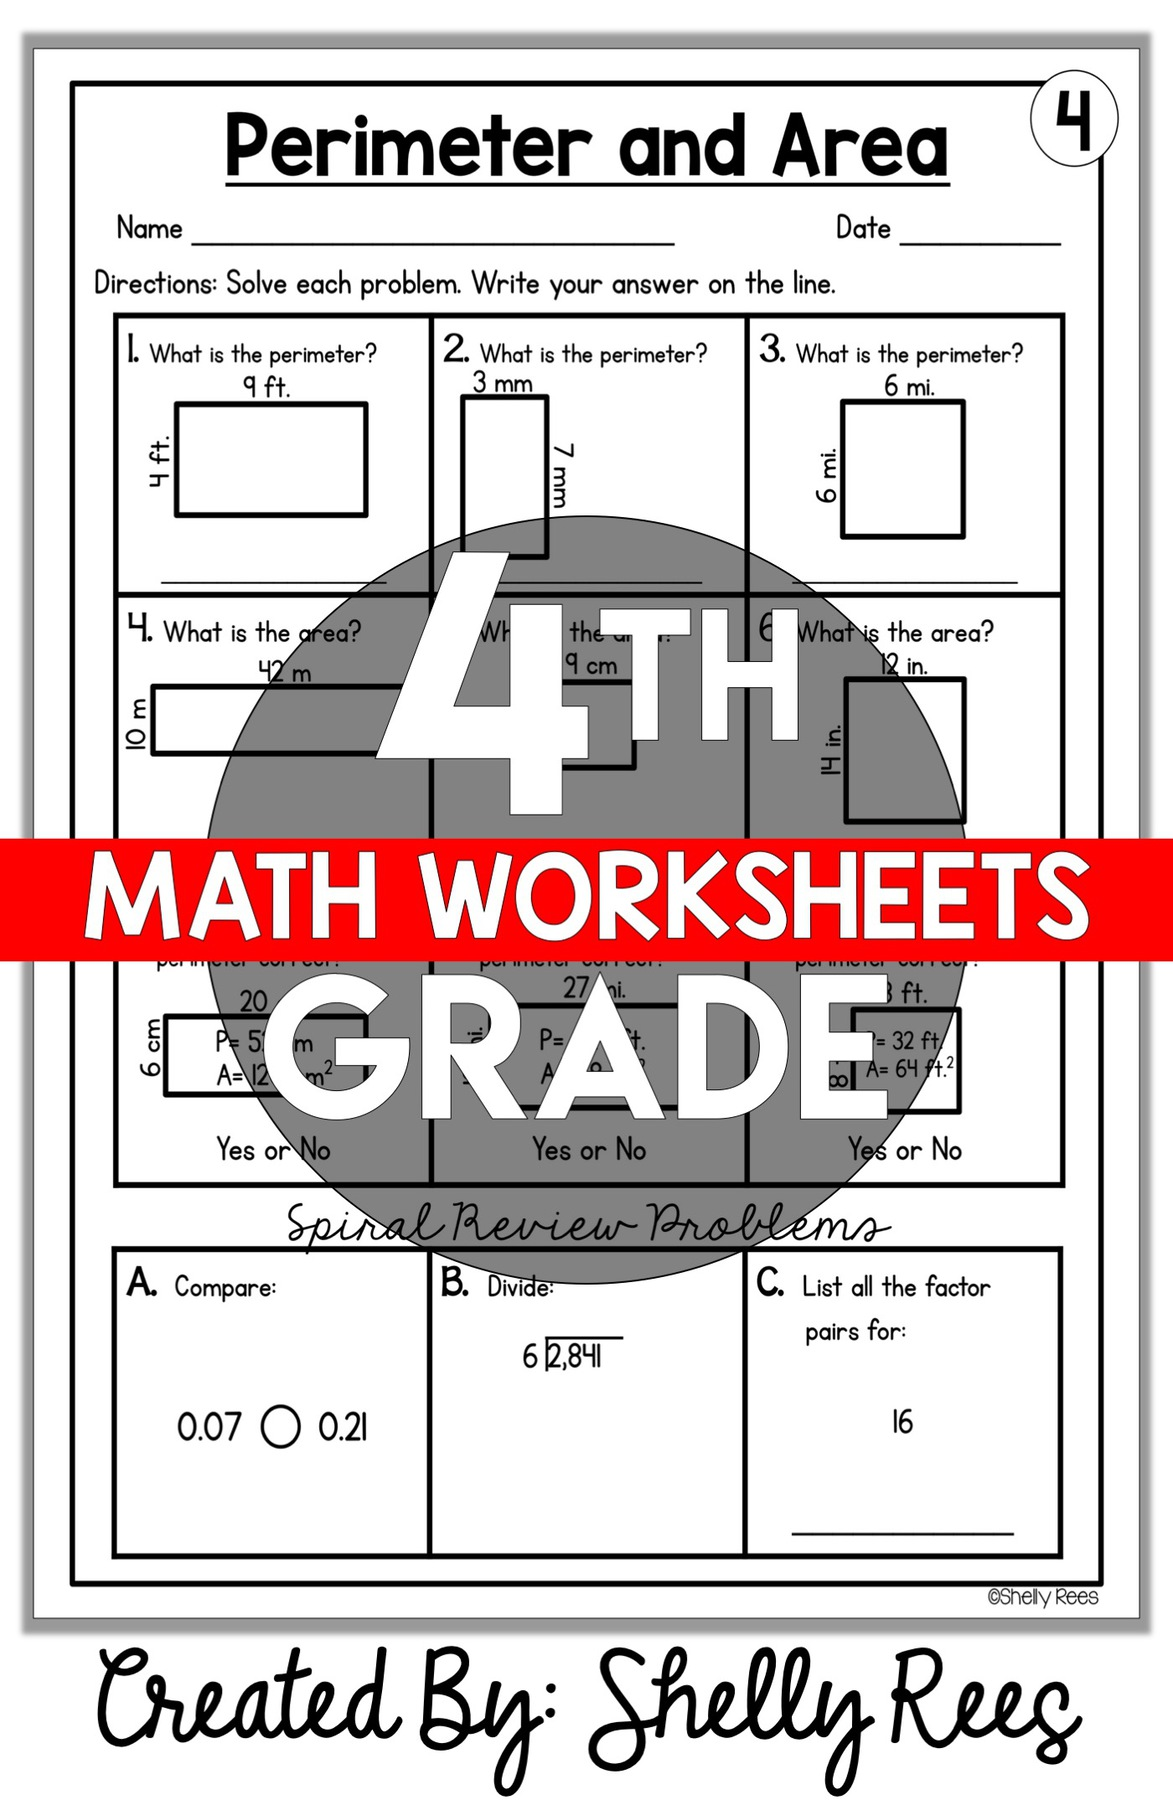 4th grade math worksheets for all skills and standards